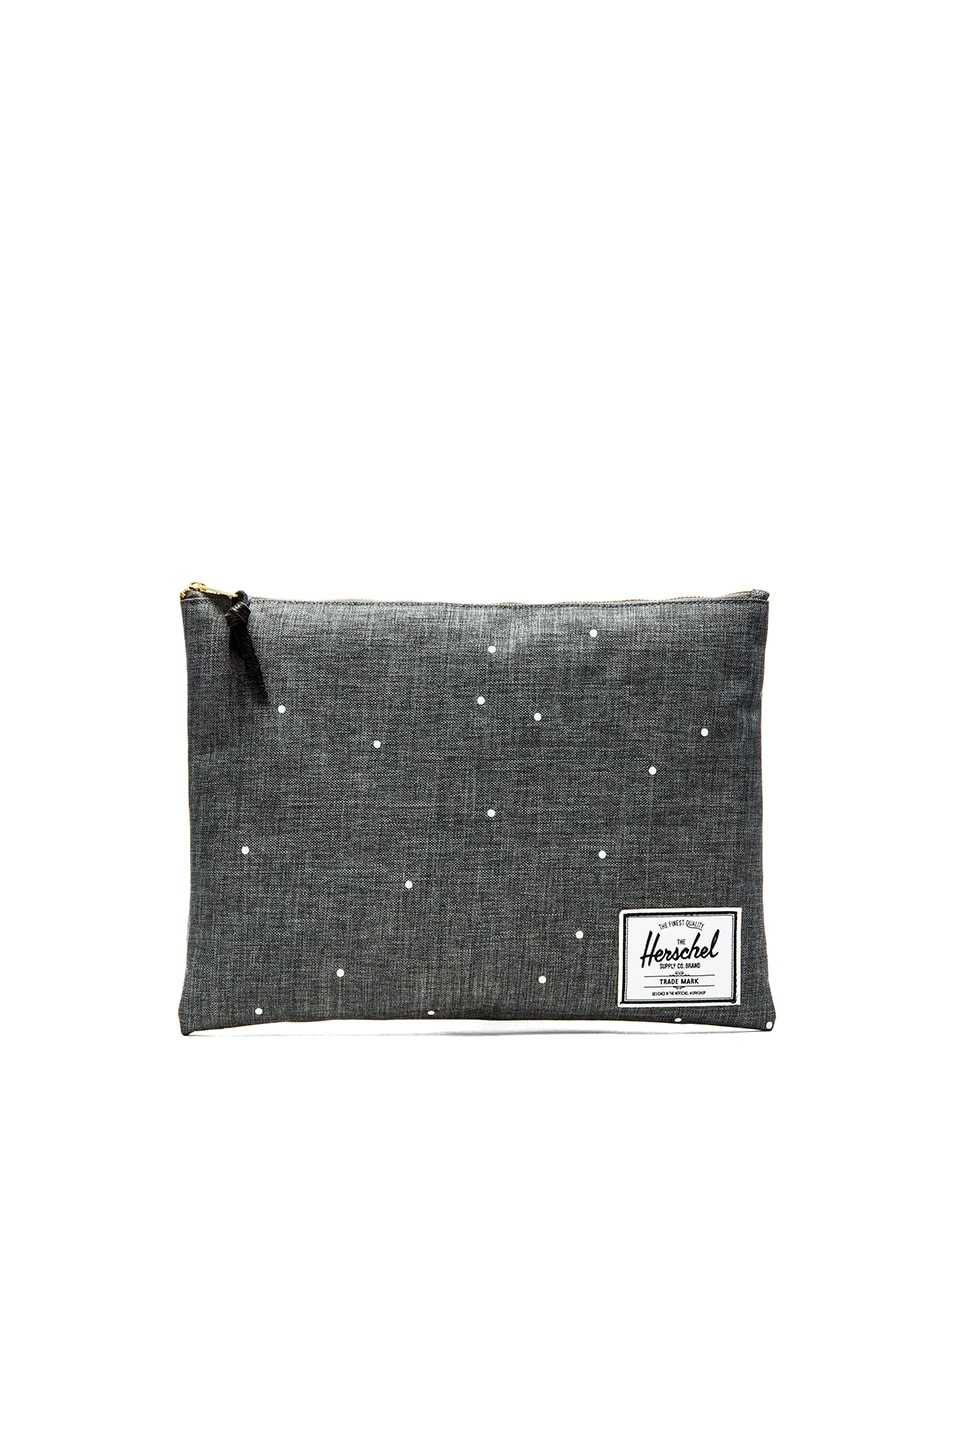 Herschel Supply Co. Network Pouch XL in Scattered Charcoal